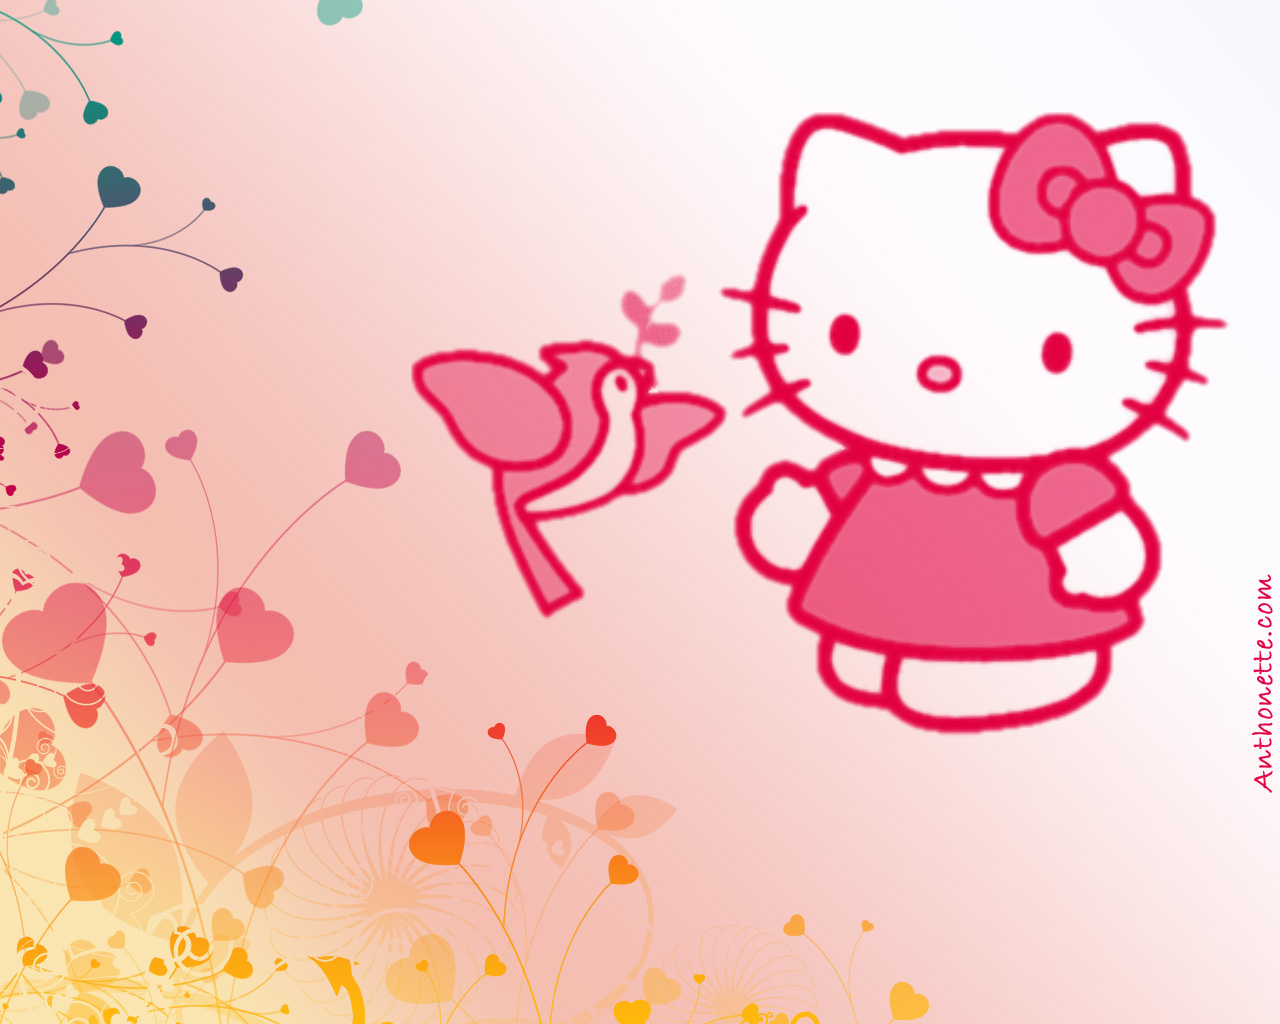 Free Download Wallpaper Hello Kitty Digalericom 1280x1024 For Your Desktop Mobile Tablet Explore 50 Gambar Wallpaper Hello Kitty Gambar Hello Kitty Wallpaper